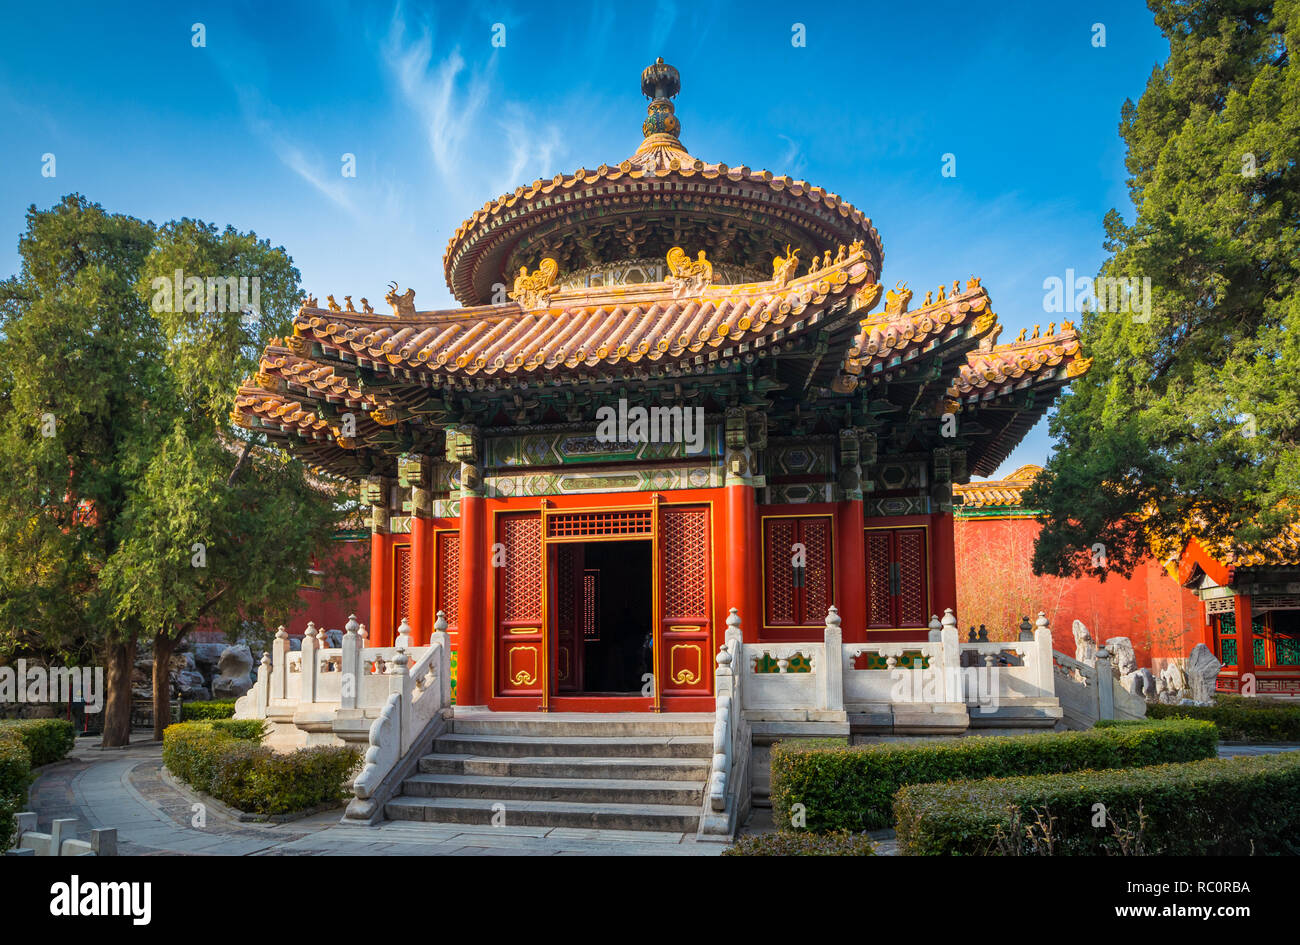 The Forbidden City is a palace complex in central Beijing, China. Stock Photo